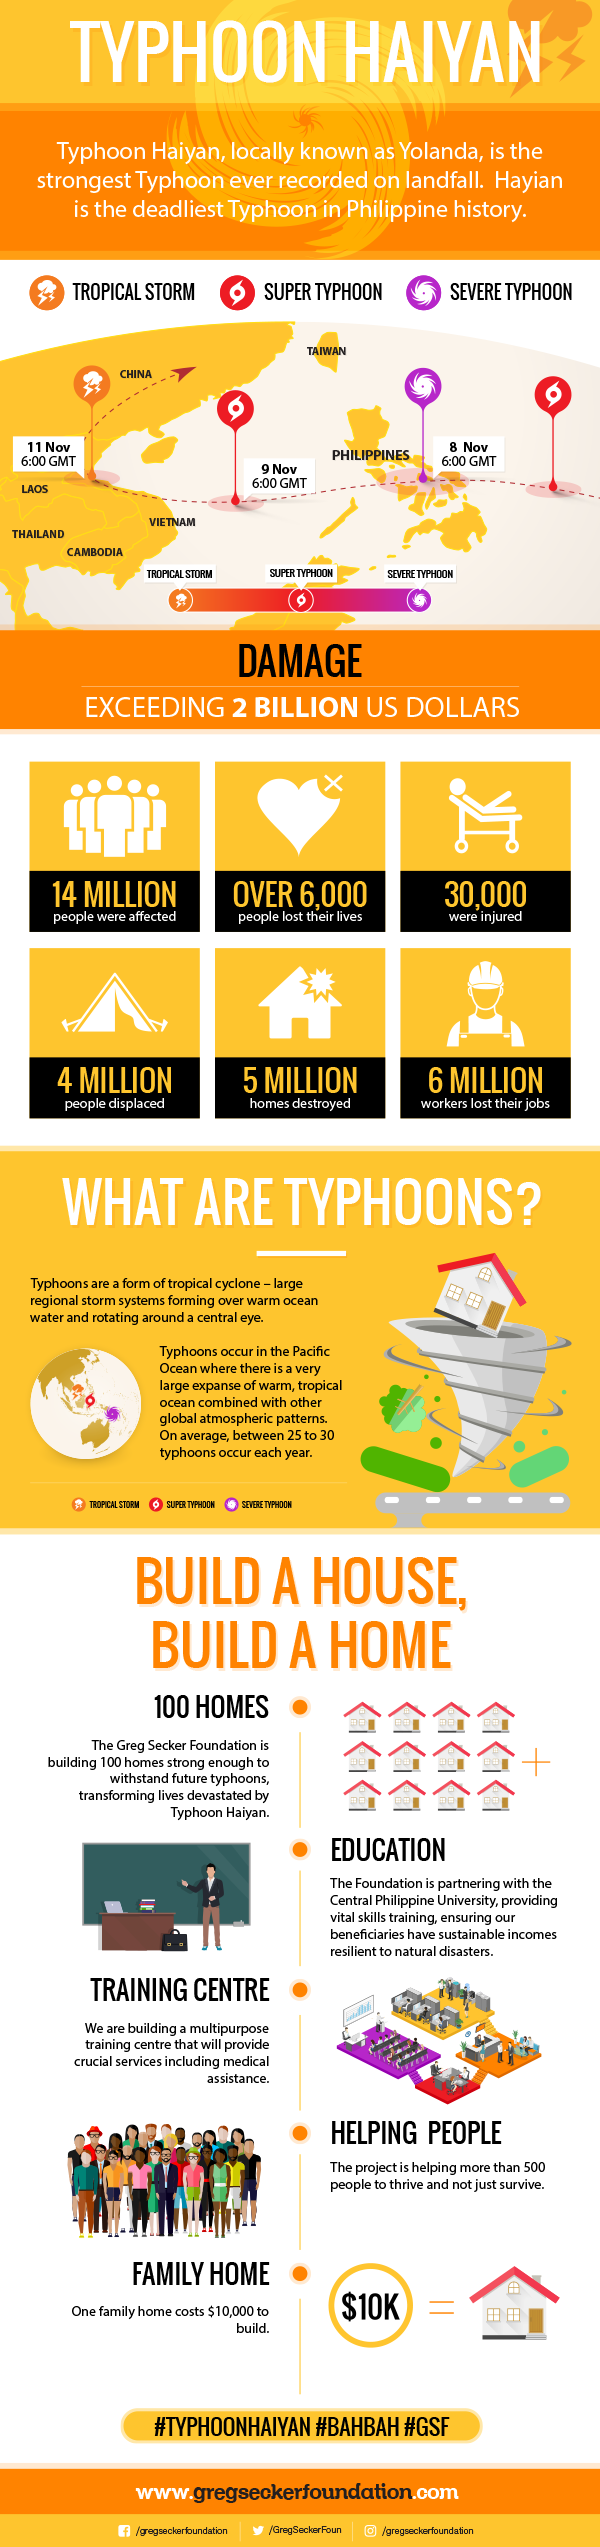 Facts About Typhoon Haiyan Greg Secker Foundation